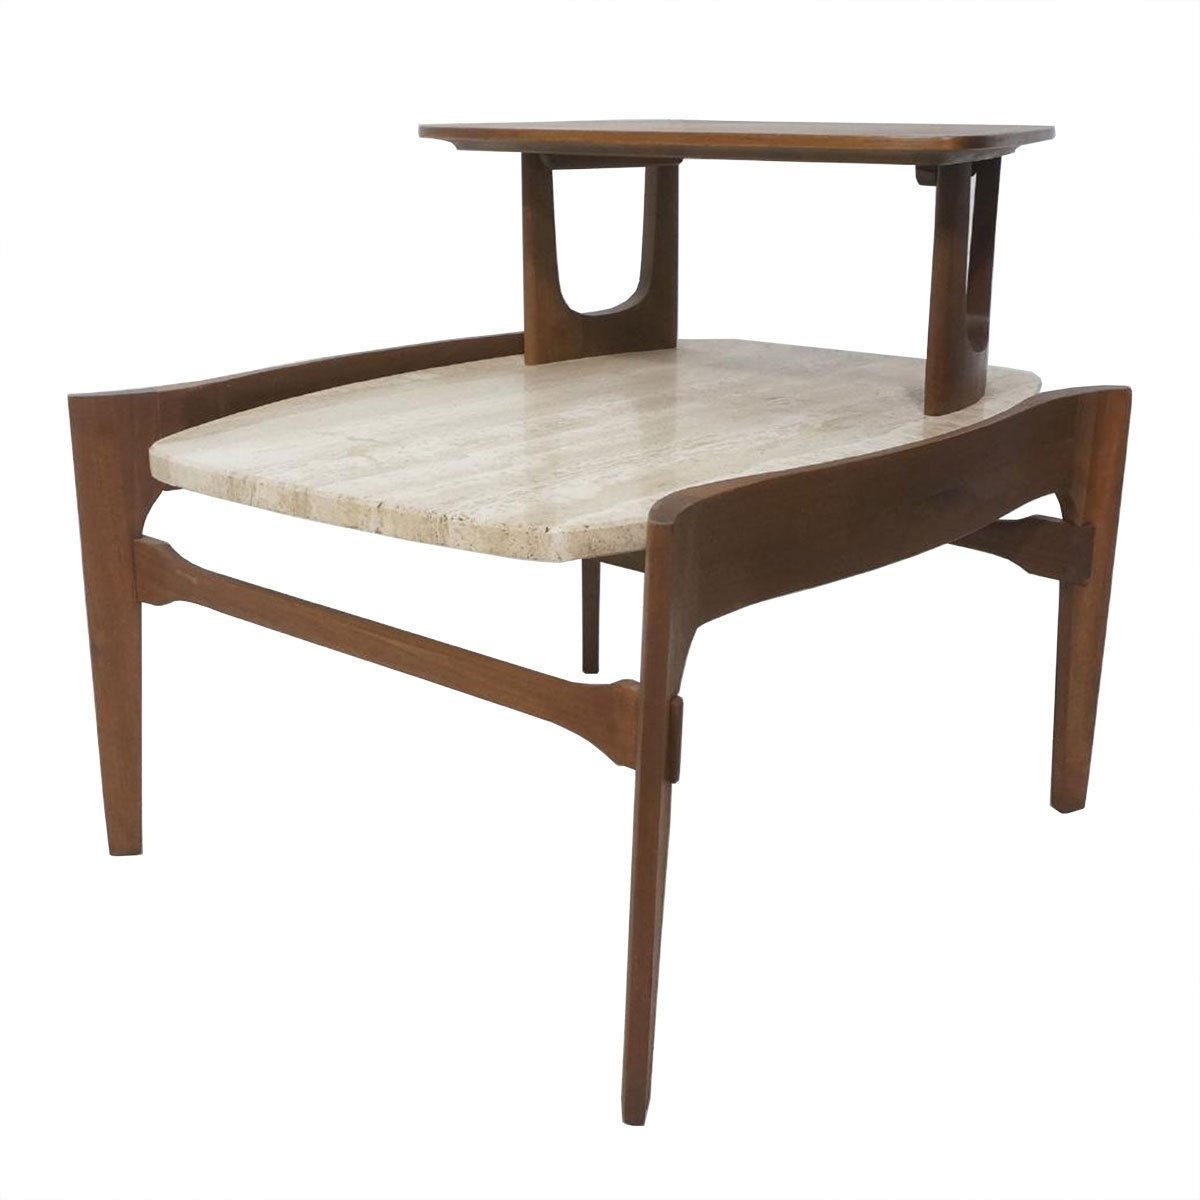 Bertha Schaefer MCM Walnut Travertine Step Table